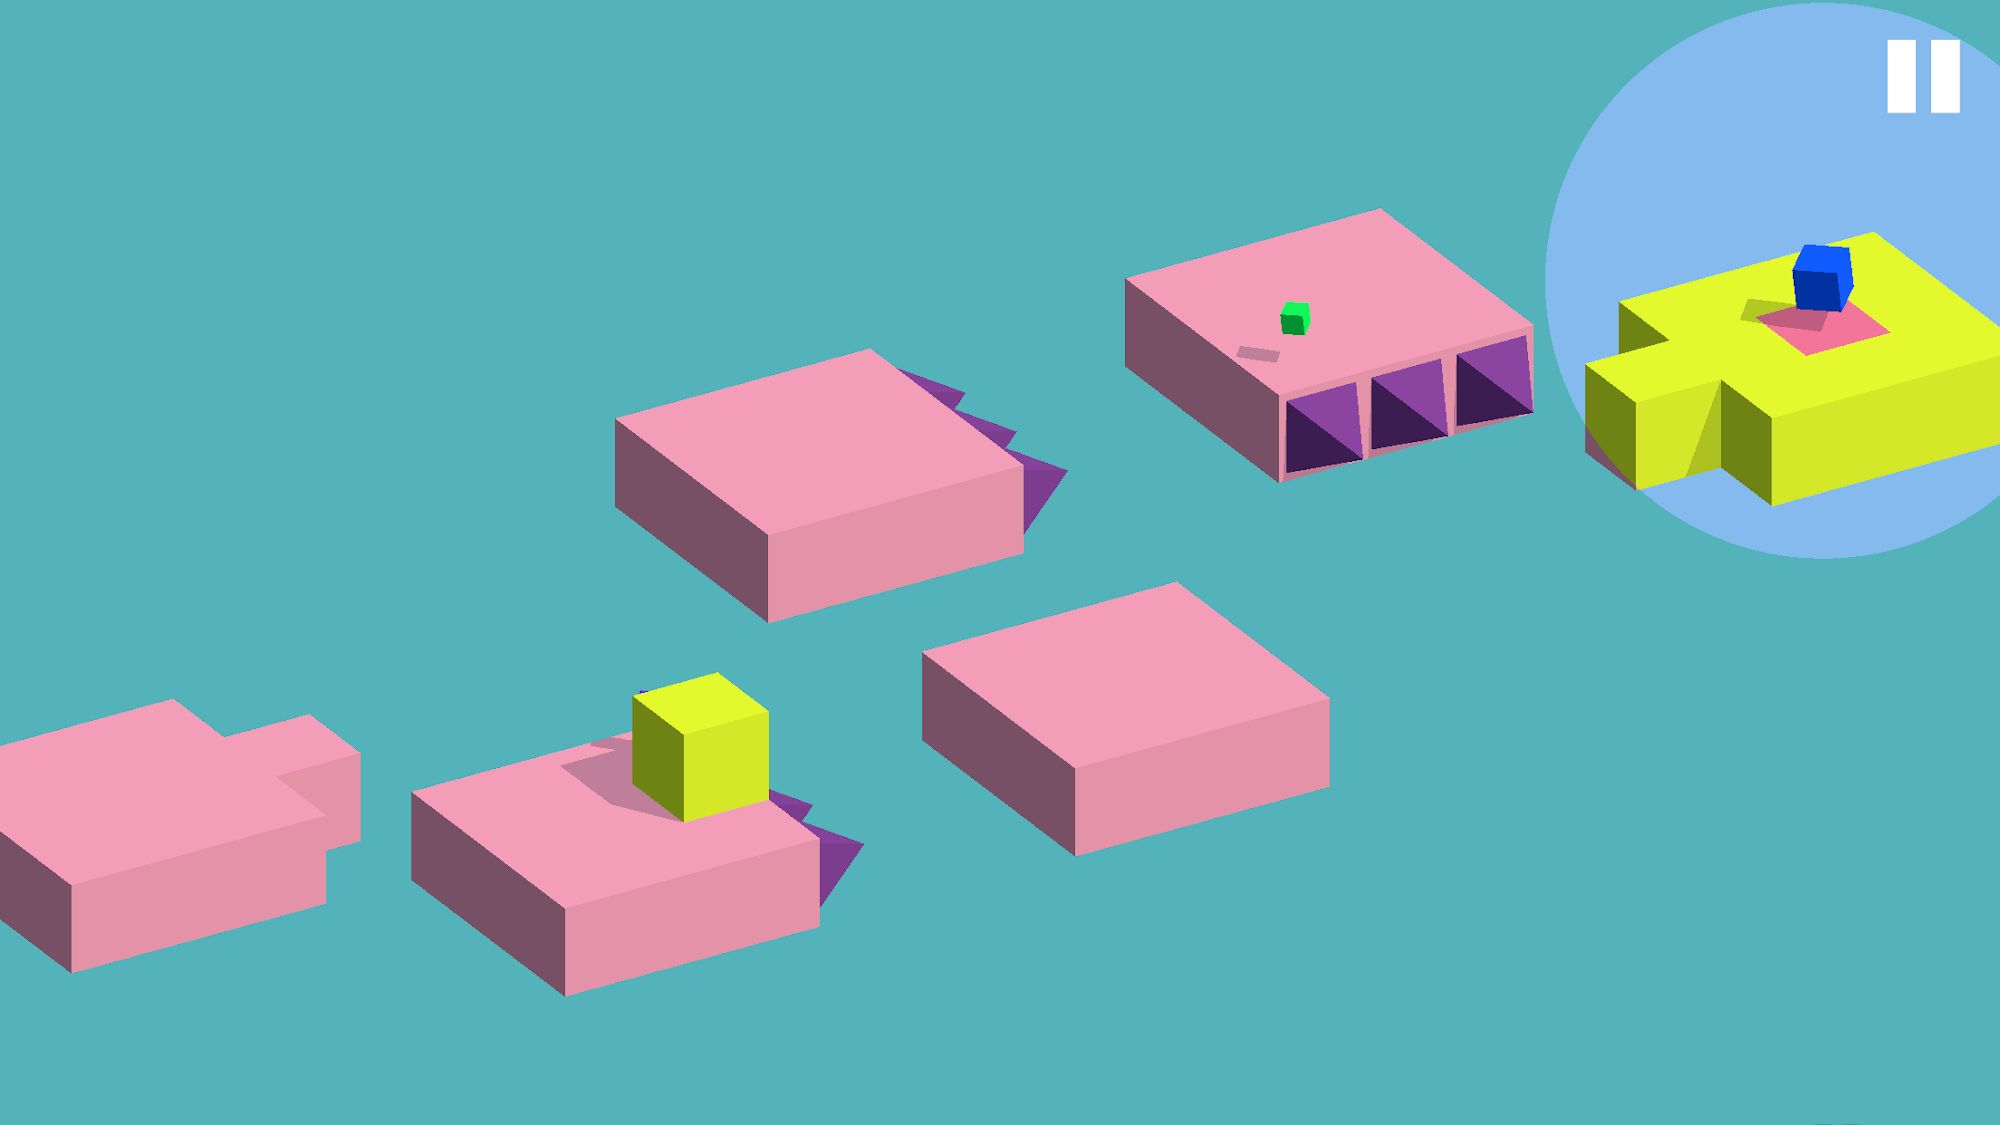 Vectronom for Android